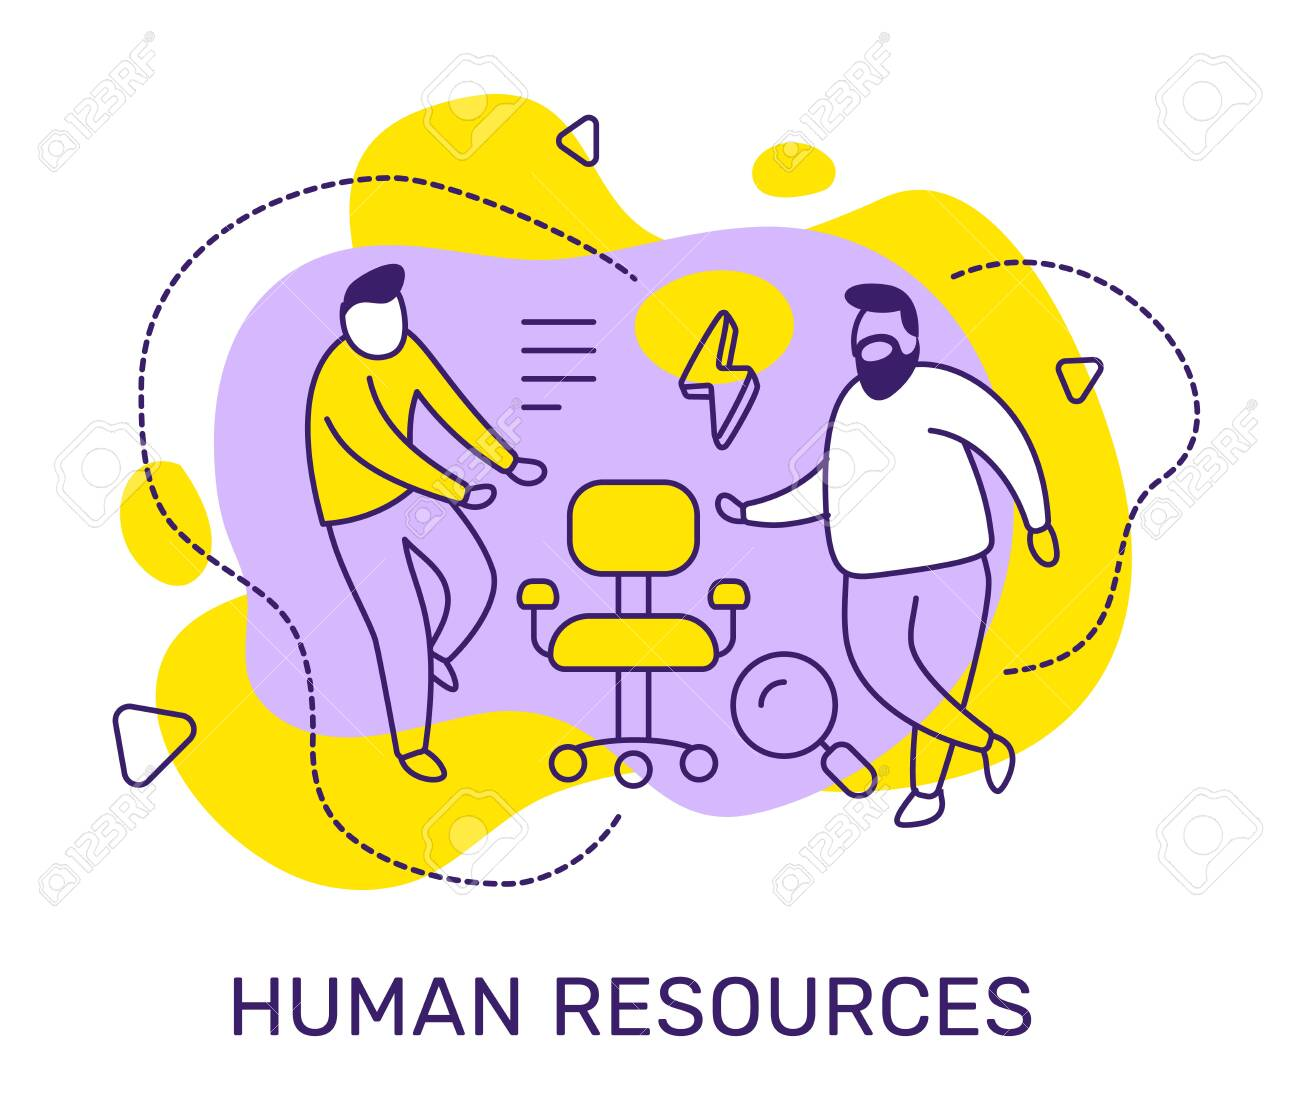 Vector business illustration of people with vacancy chair, magnifier on color background. Human resources concept with man, text. Line art style design for web, site, poster, banner - 123138691